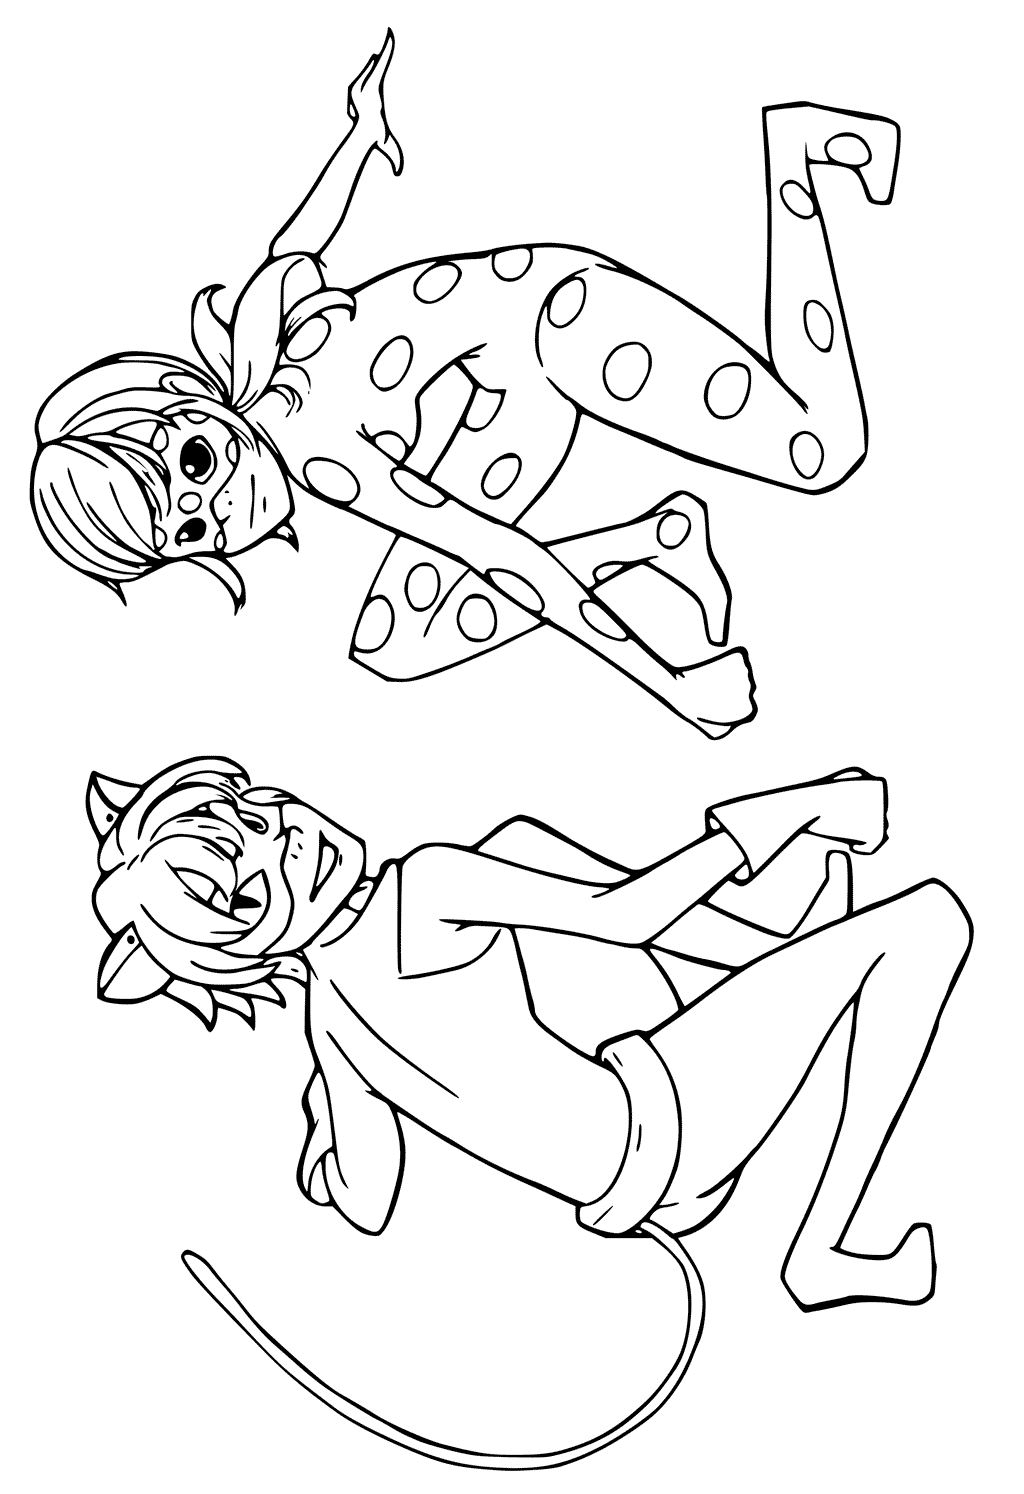 kids n fun com coloring page miraculous tales of ladybug and cat